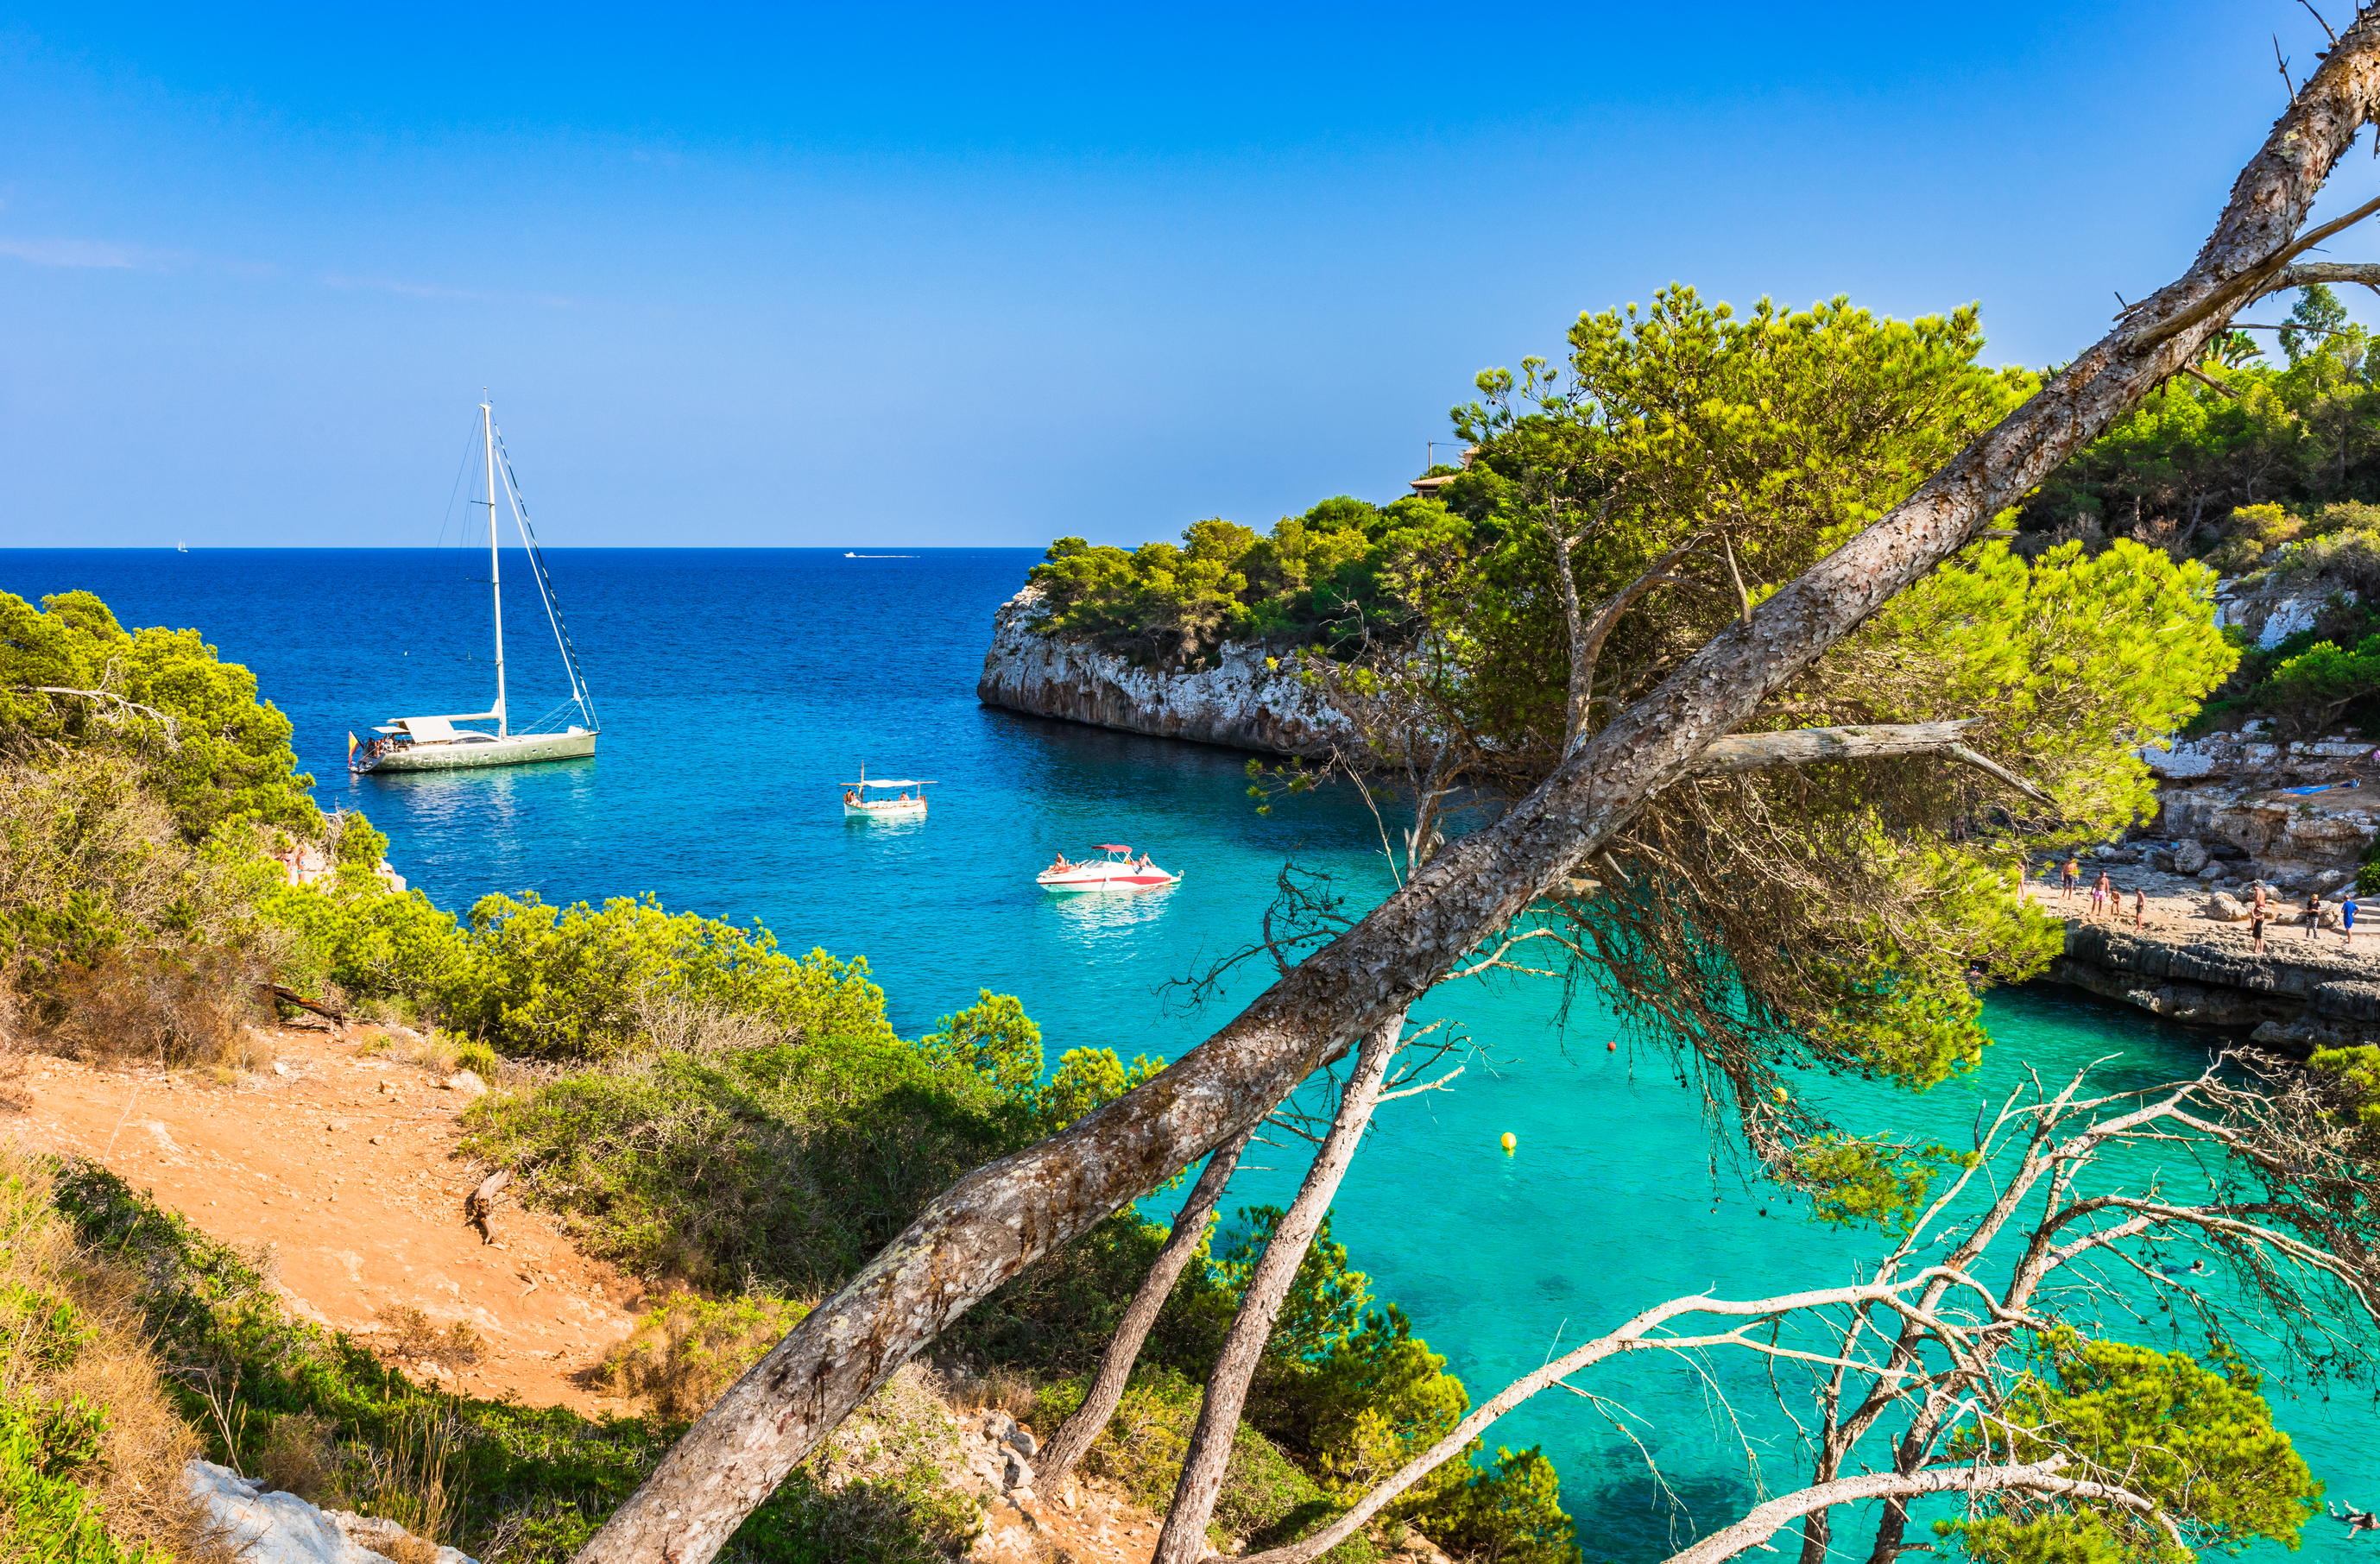 Spain Majorca Cala Llombards idyllic bay with boats